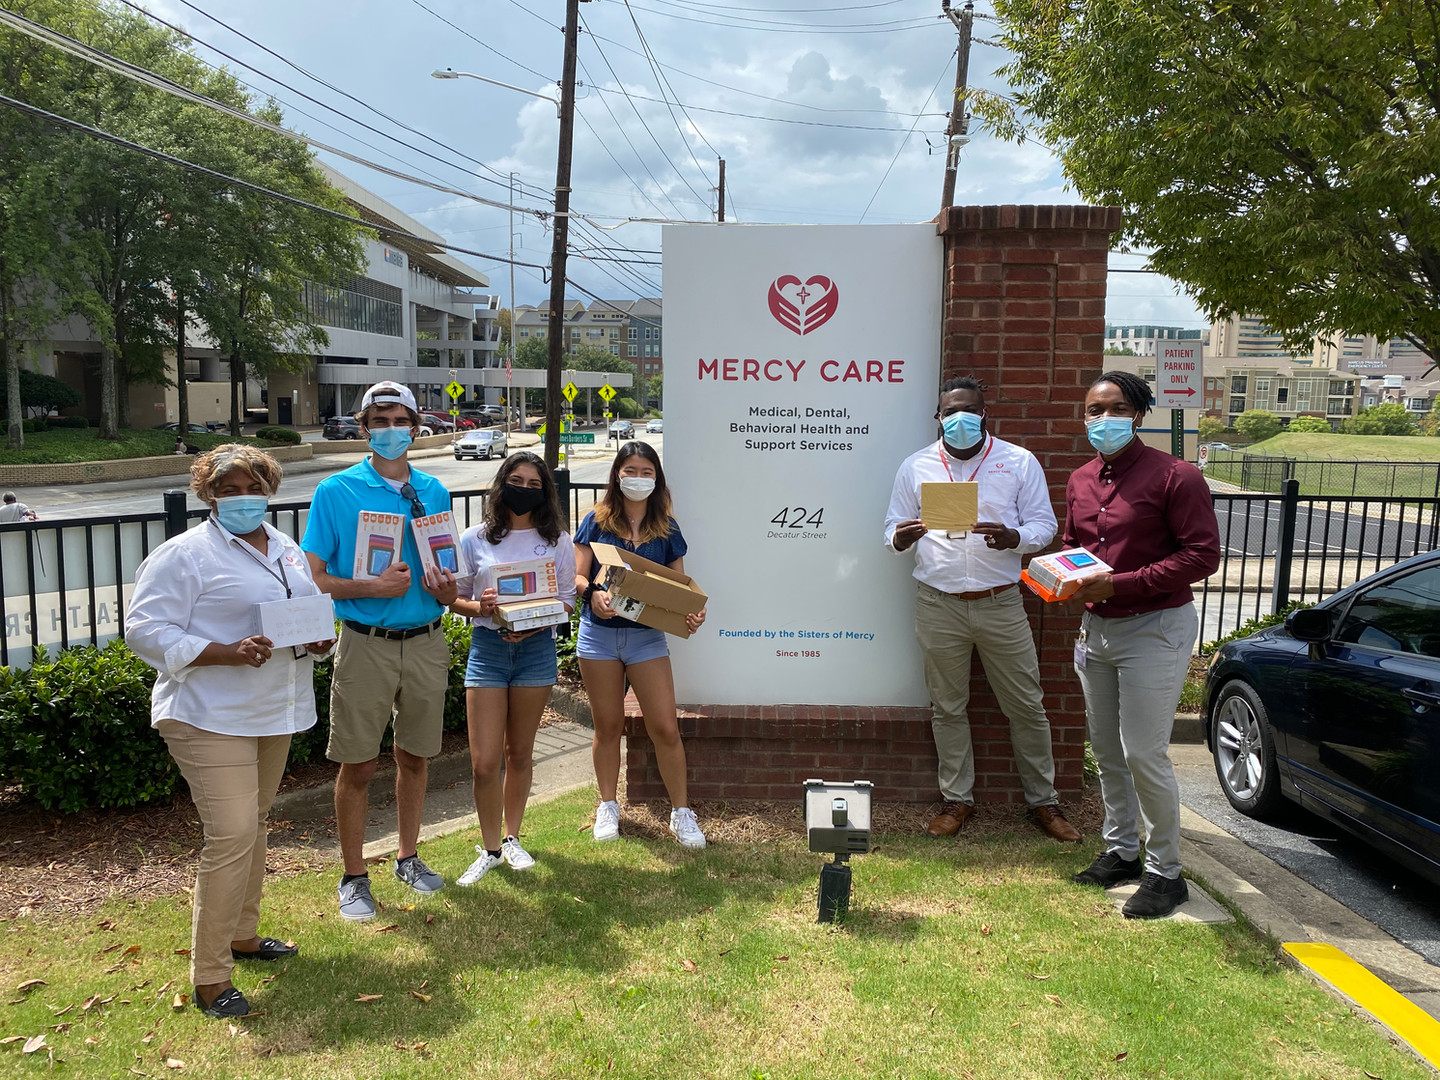 A federally qualified health center and Atlanta's only healthcare for the homeless program (330h), Mercy Care accepts most insurances plans, Medicare and Medicaid and offers a sliding fee scale based on household income for the uninsured. There are multiple Mercy Care clinics in the Atlanta area, and we hope to deliver devices to more of the Mercy Care clinics in Georgia.